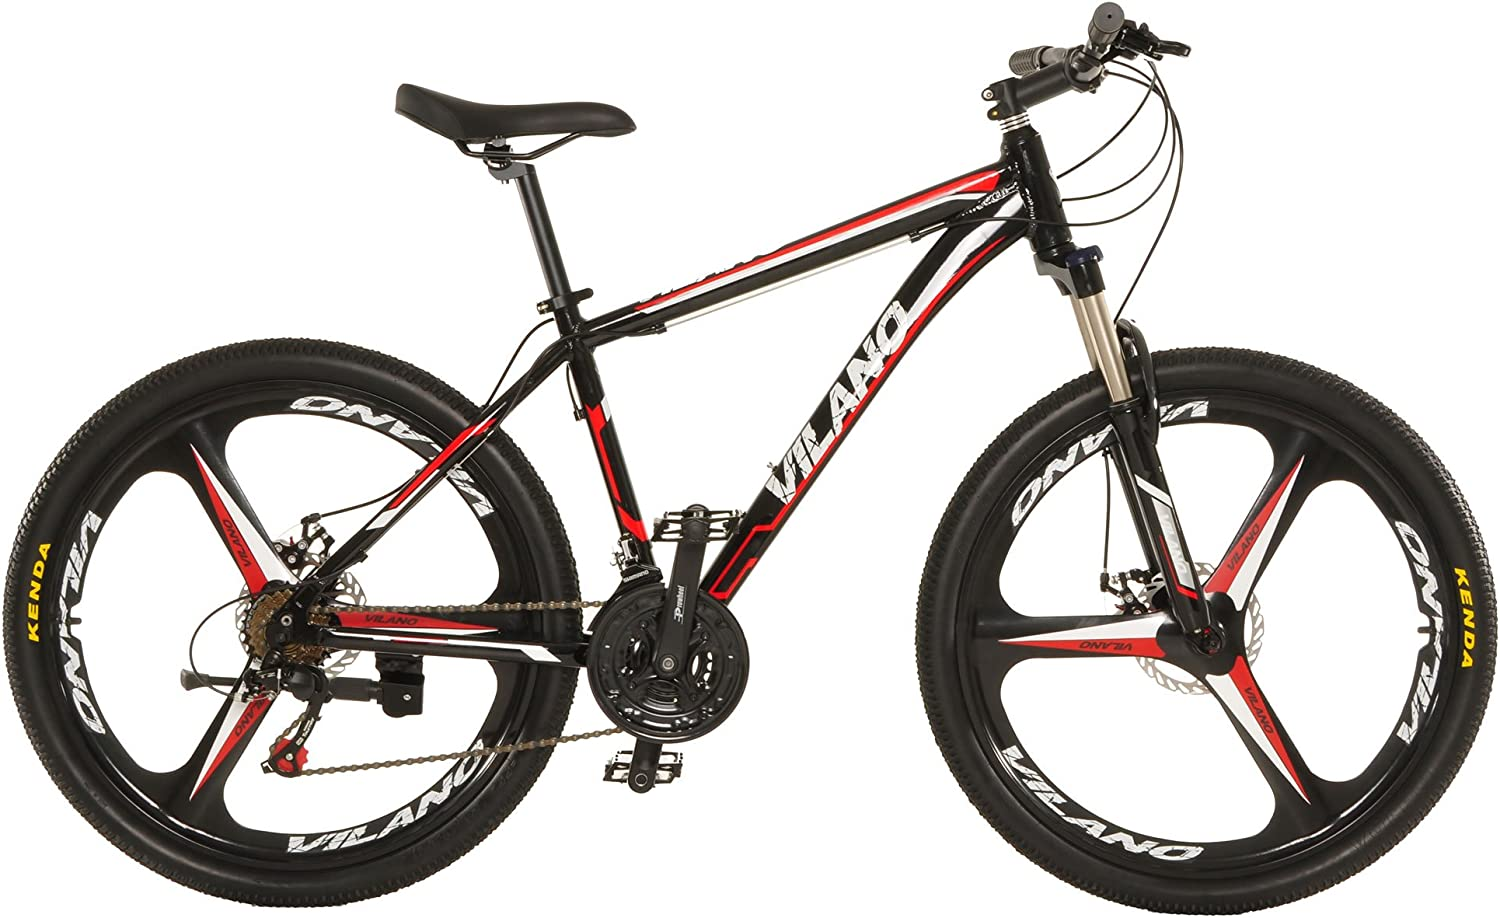 """Vilano 26"" Mountain Bike Ridge 2.0 MTB 21 Speed with Disc Brakes""Vilano Bikes Review"